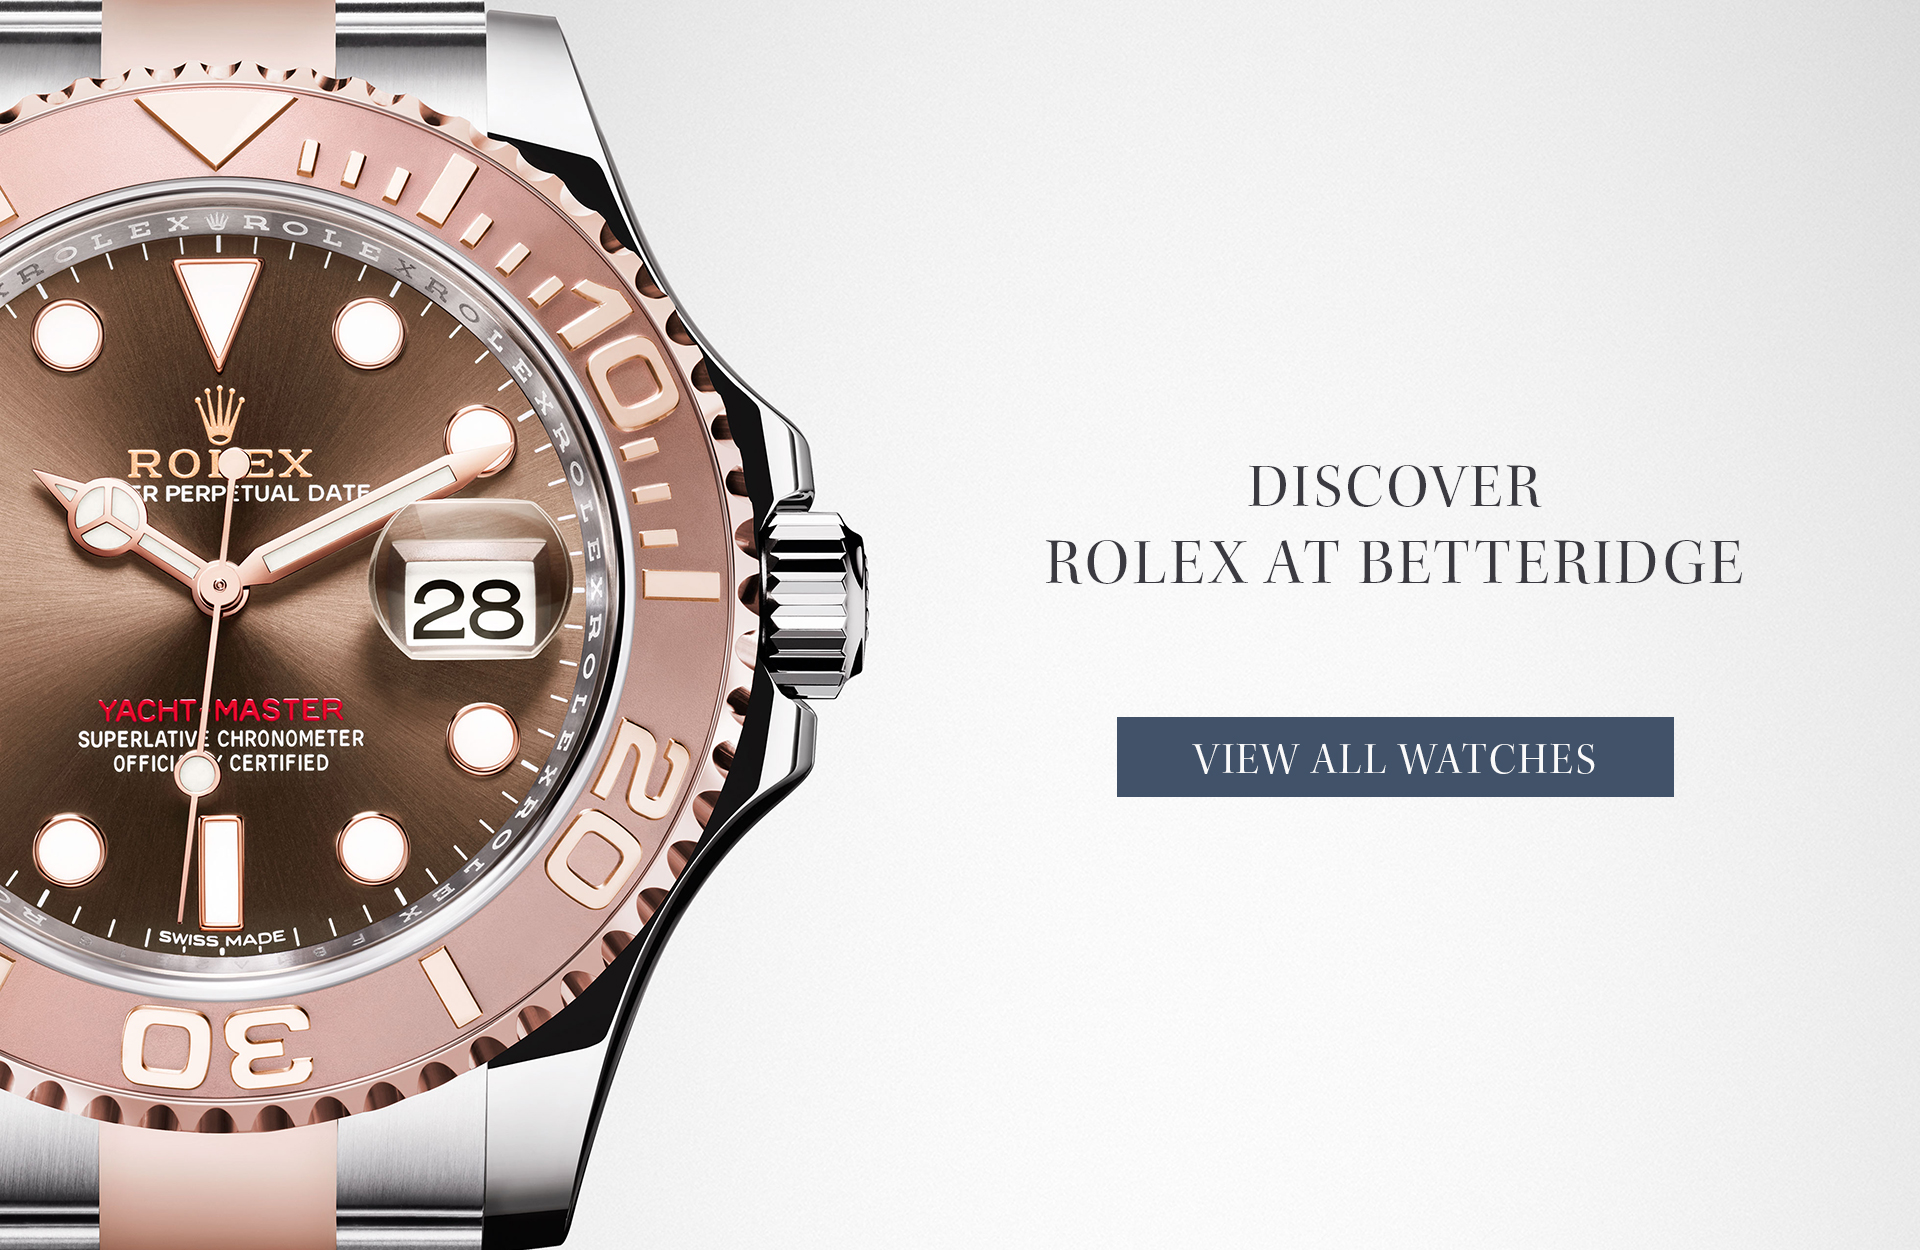 Rolex Watches at Betteridge